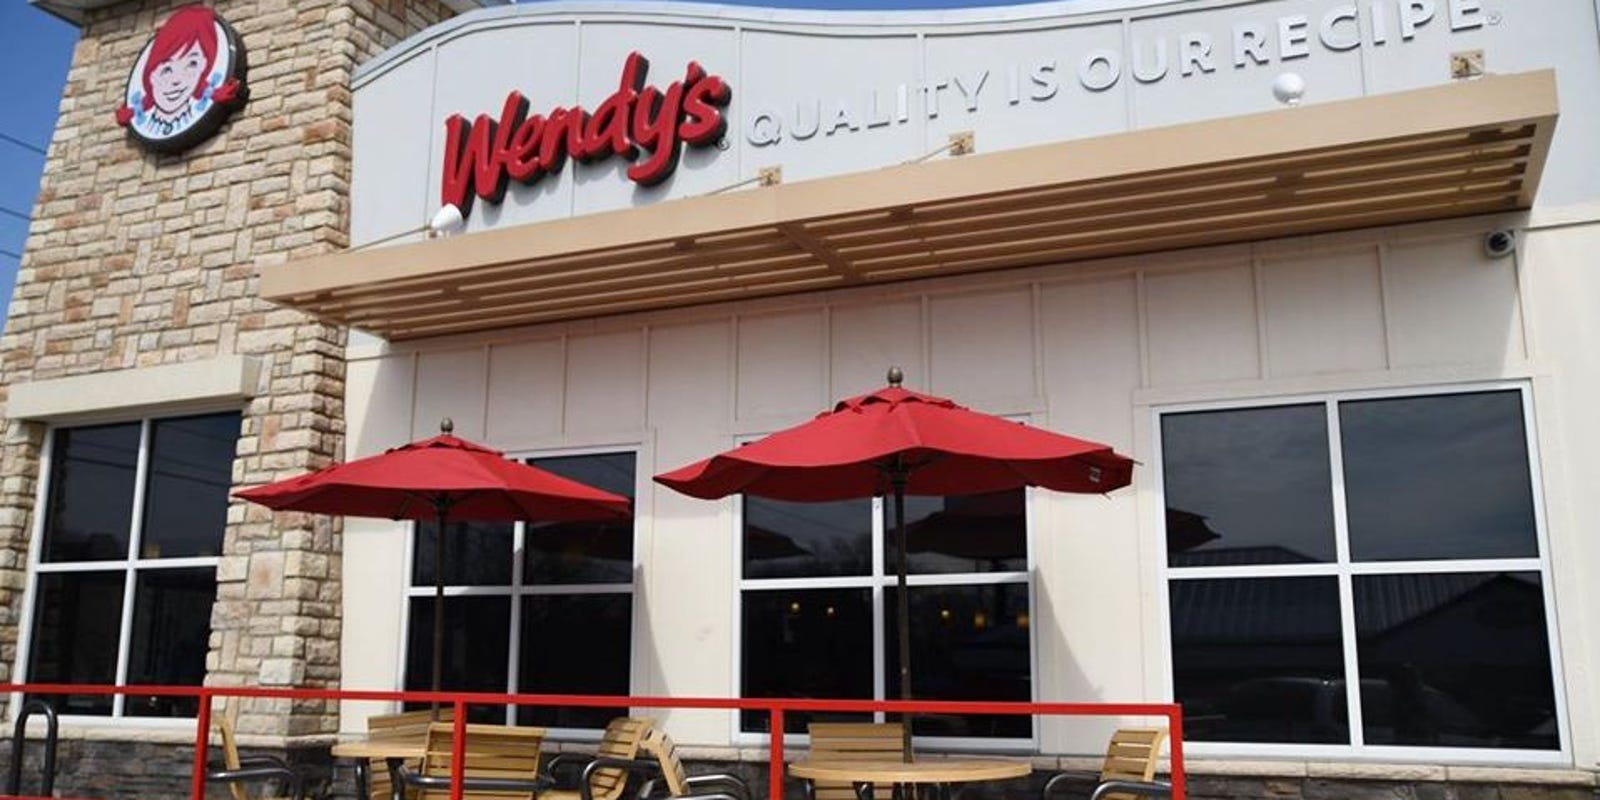 No burgers at Wendy's? Fast food chain says some menu items may be 'temporarily limited'